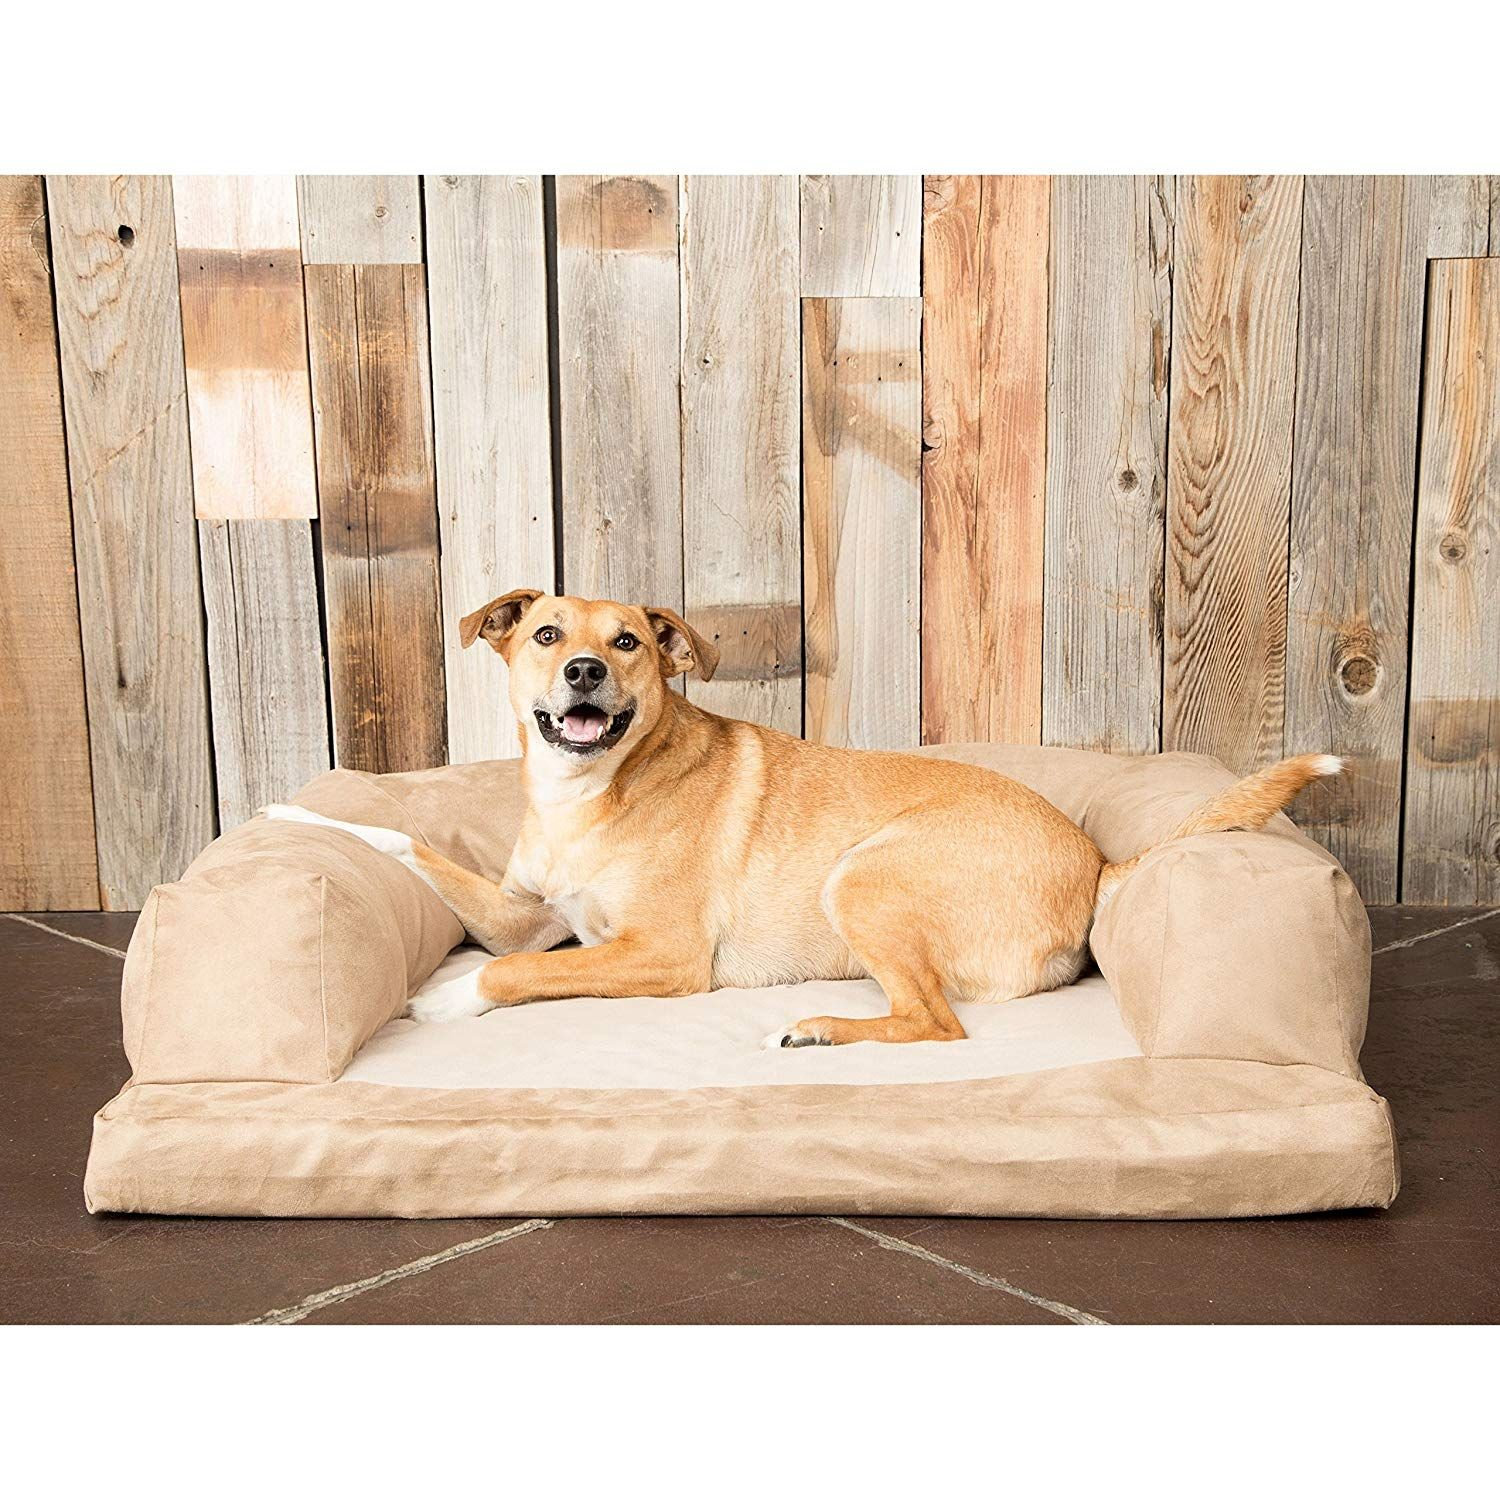 Extra ExtraLarge Tan Plush Solid Pattern Dog Bed